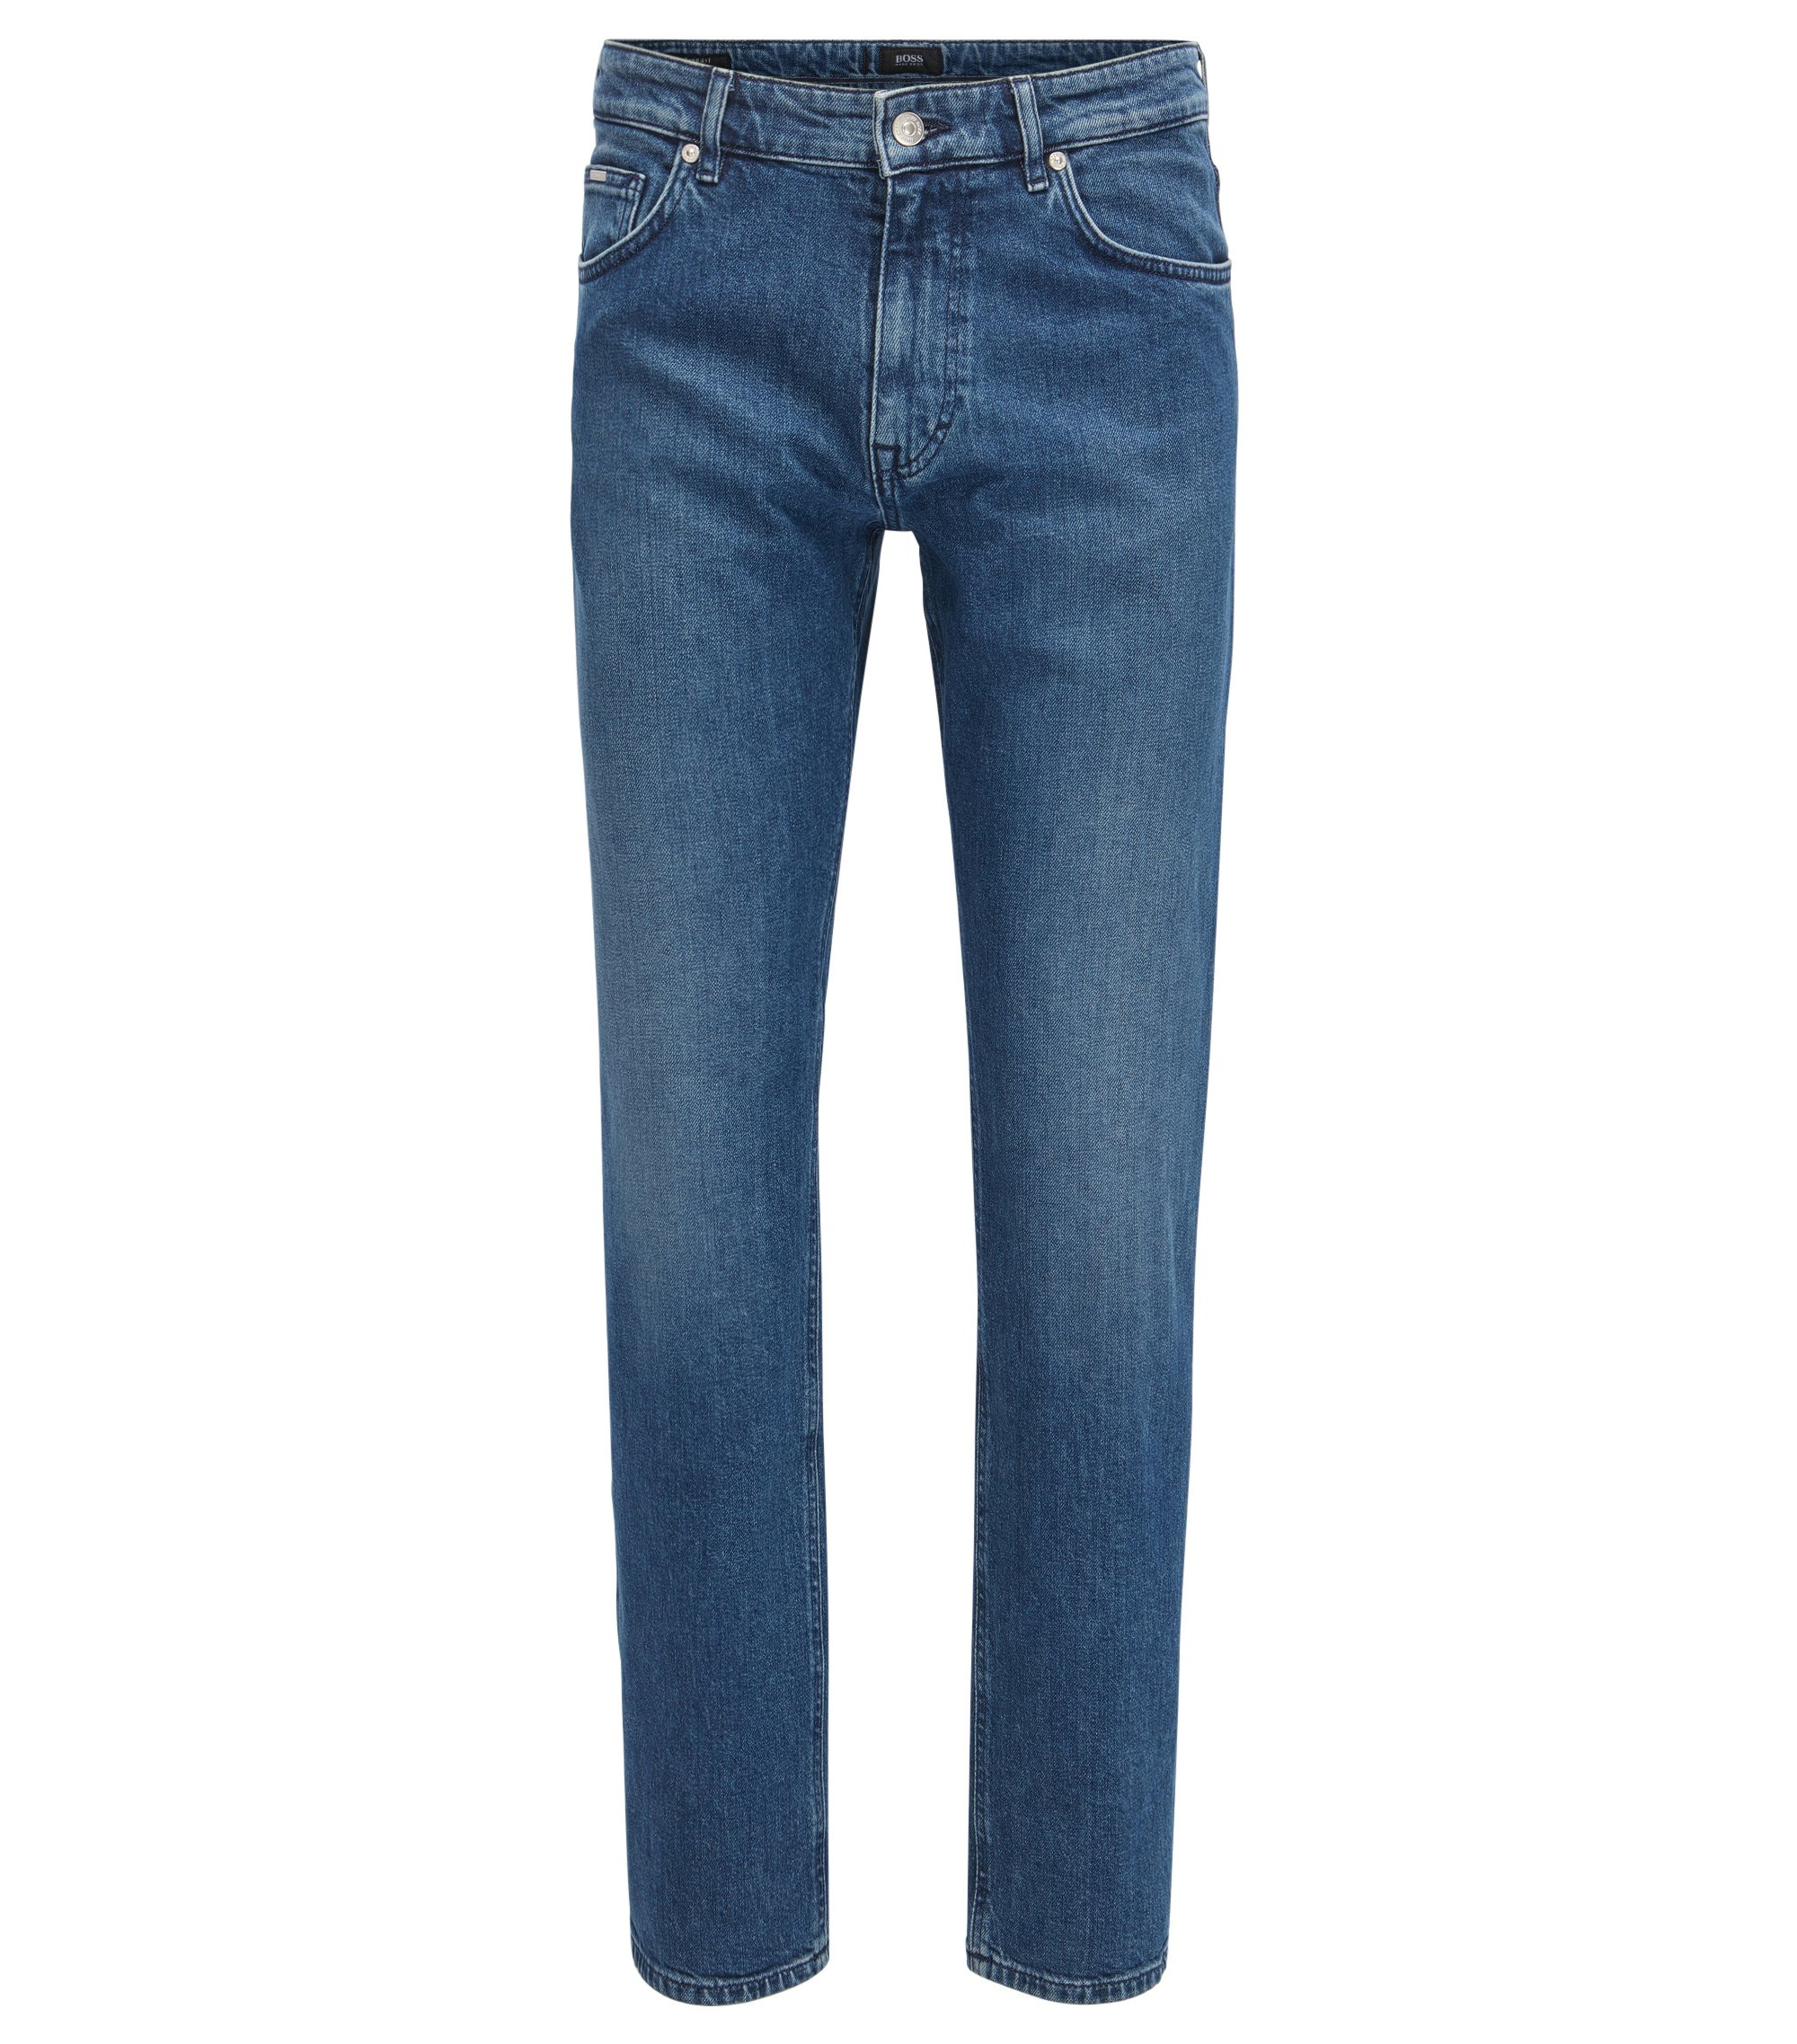 Stretch Cotton Jeans, Relaxed Fit | Albany, Blue